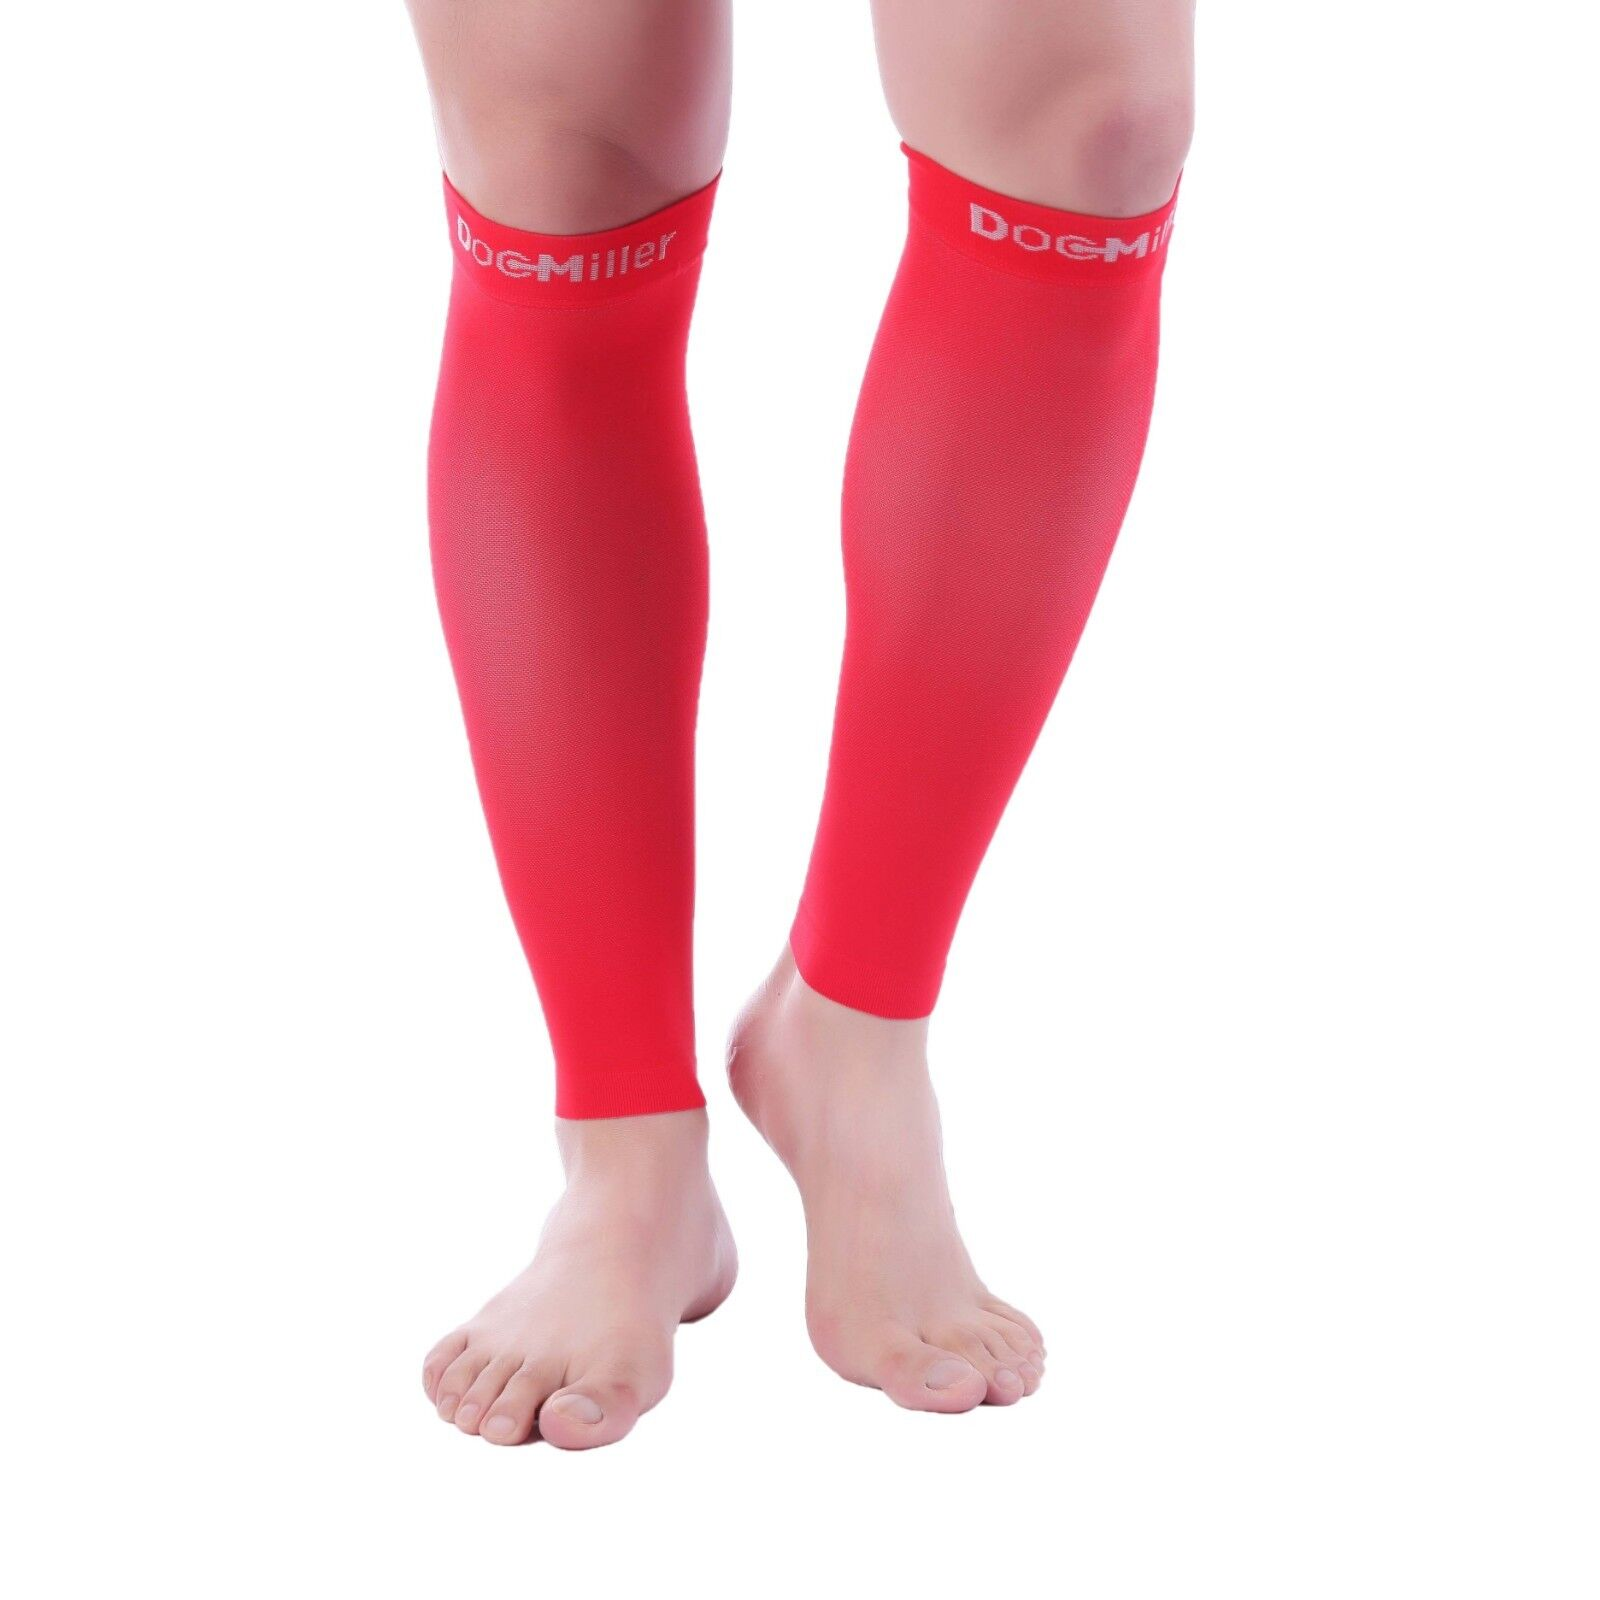 a87193d1ed8 Details about Doc Miller Calf Compression Sleeve 1 Pair 20-30mmHg Recovery  Varicose Veins RED